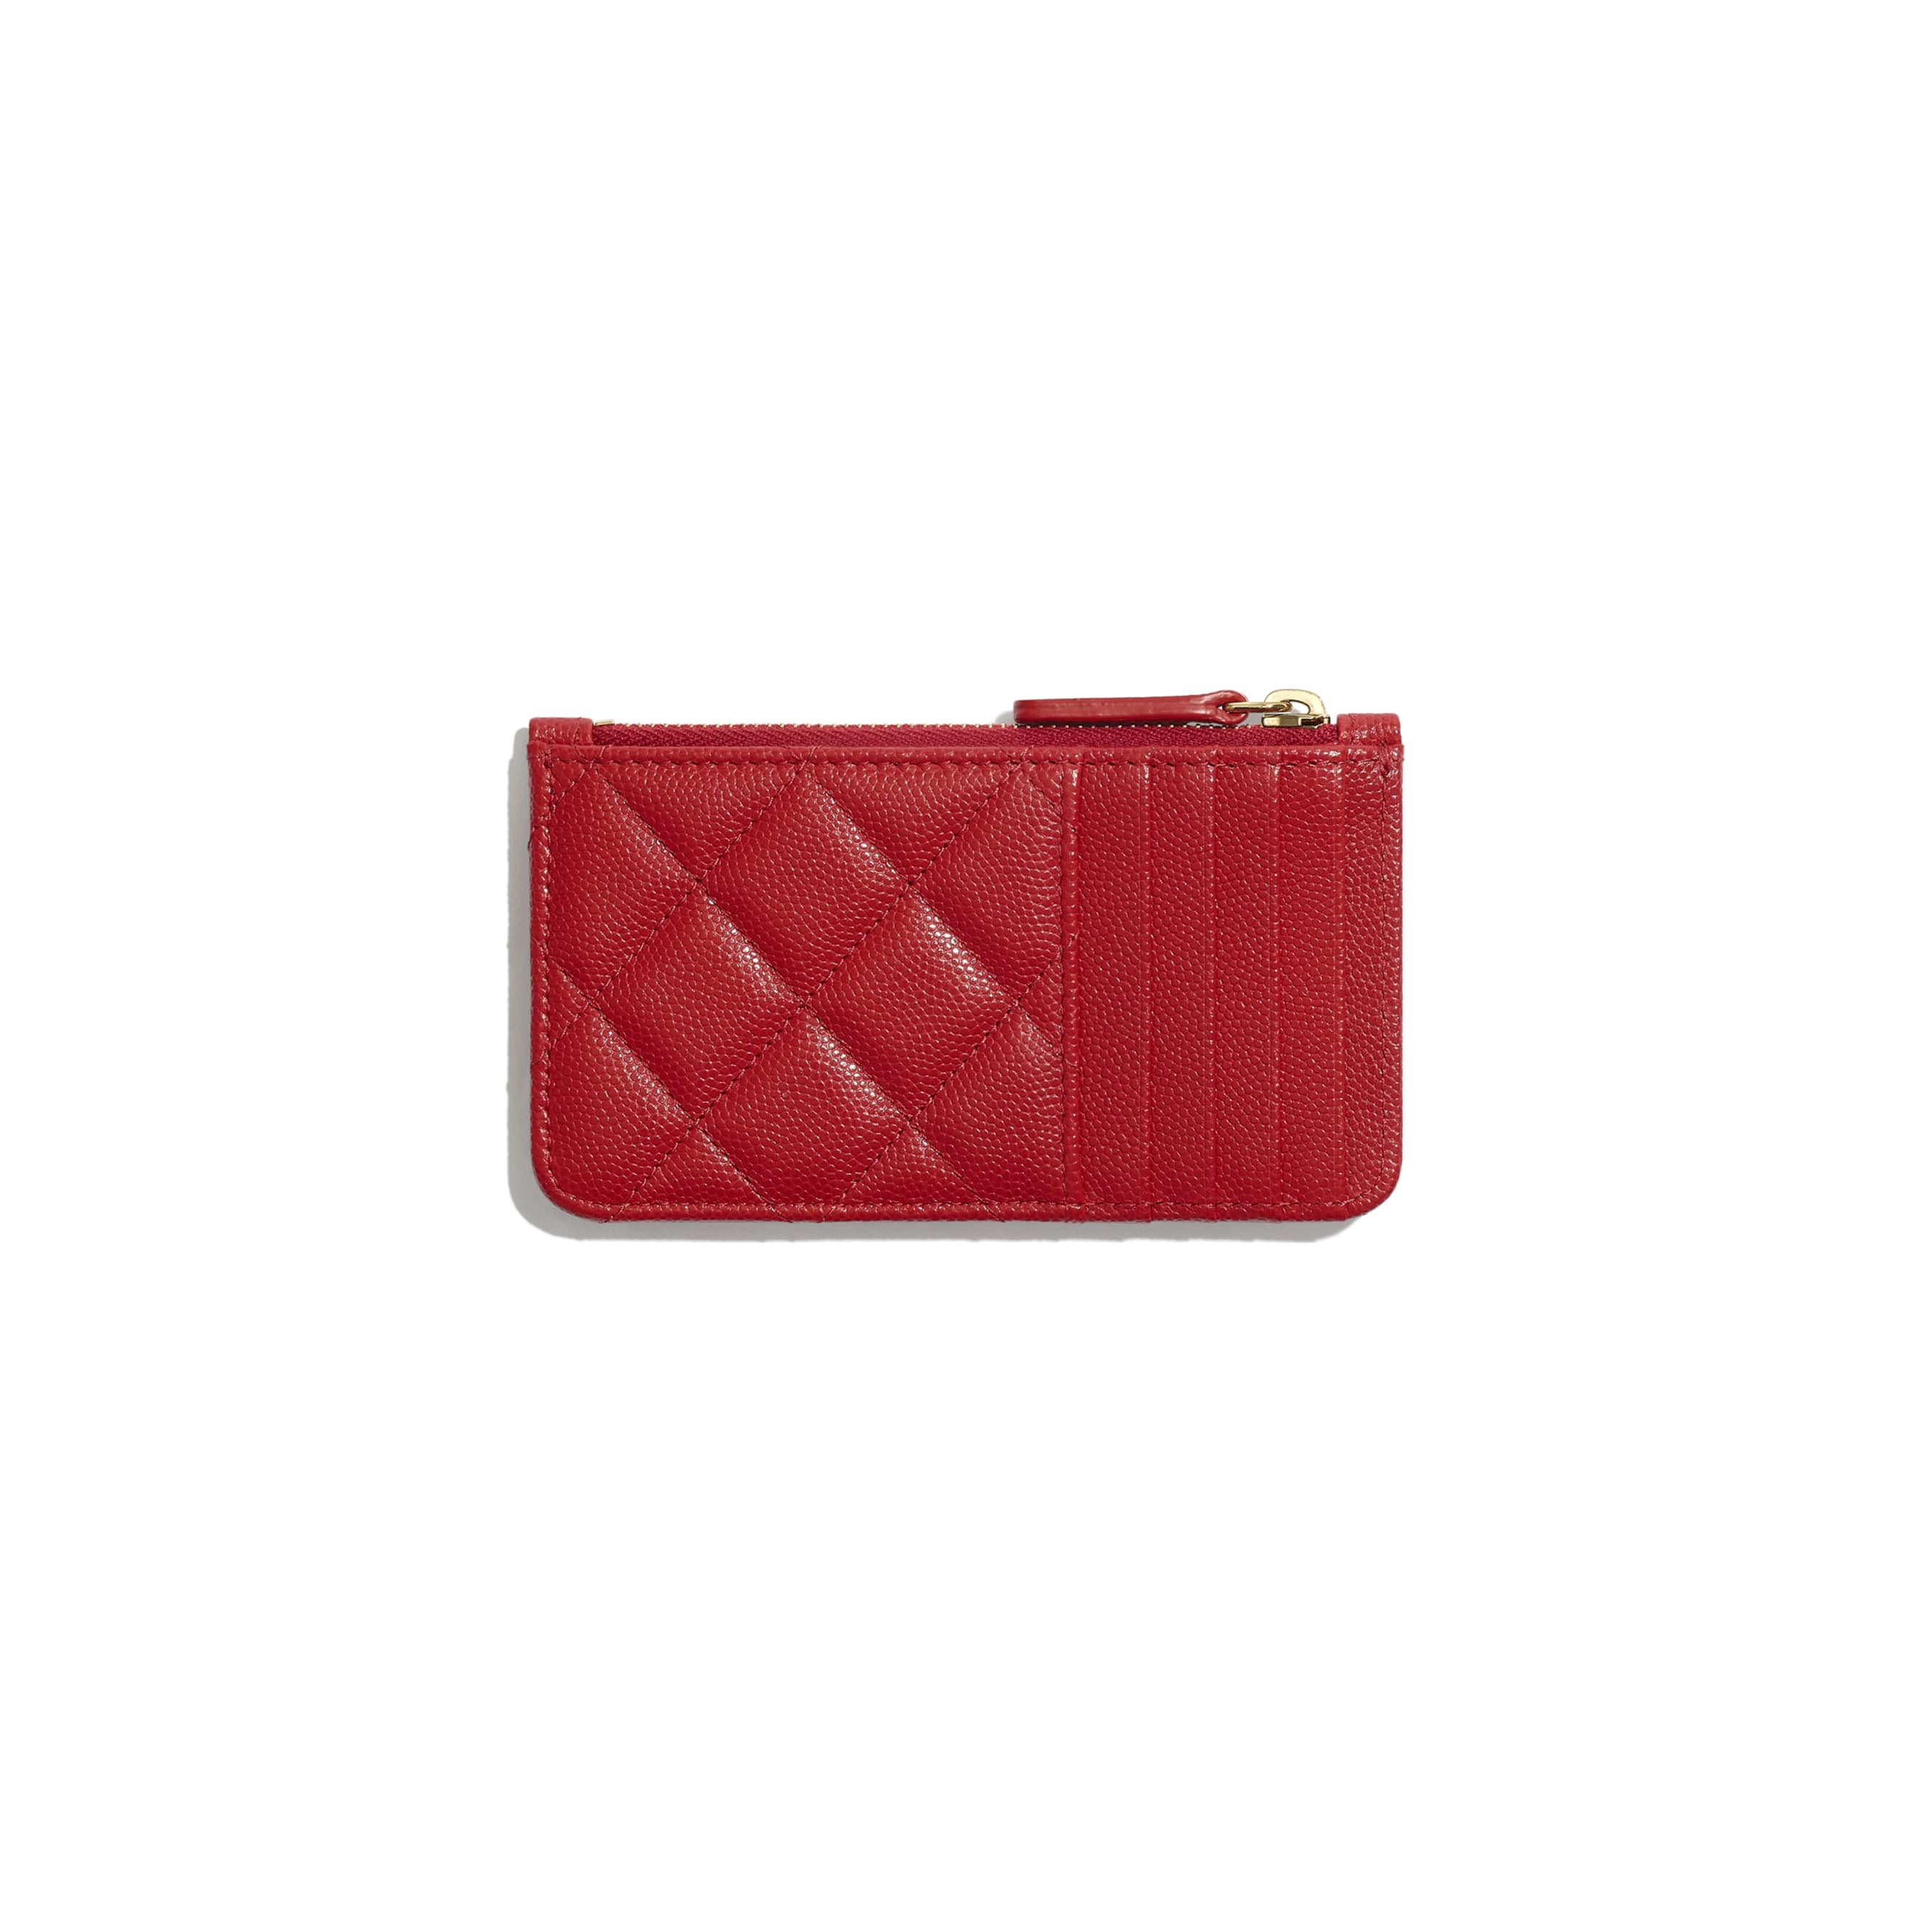 Classic Card Holder - Red - Grained Calfskin & Gold-Tone Metal - Alternative view - see standard sized version